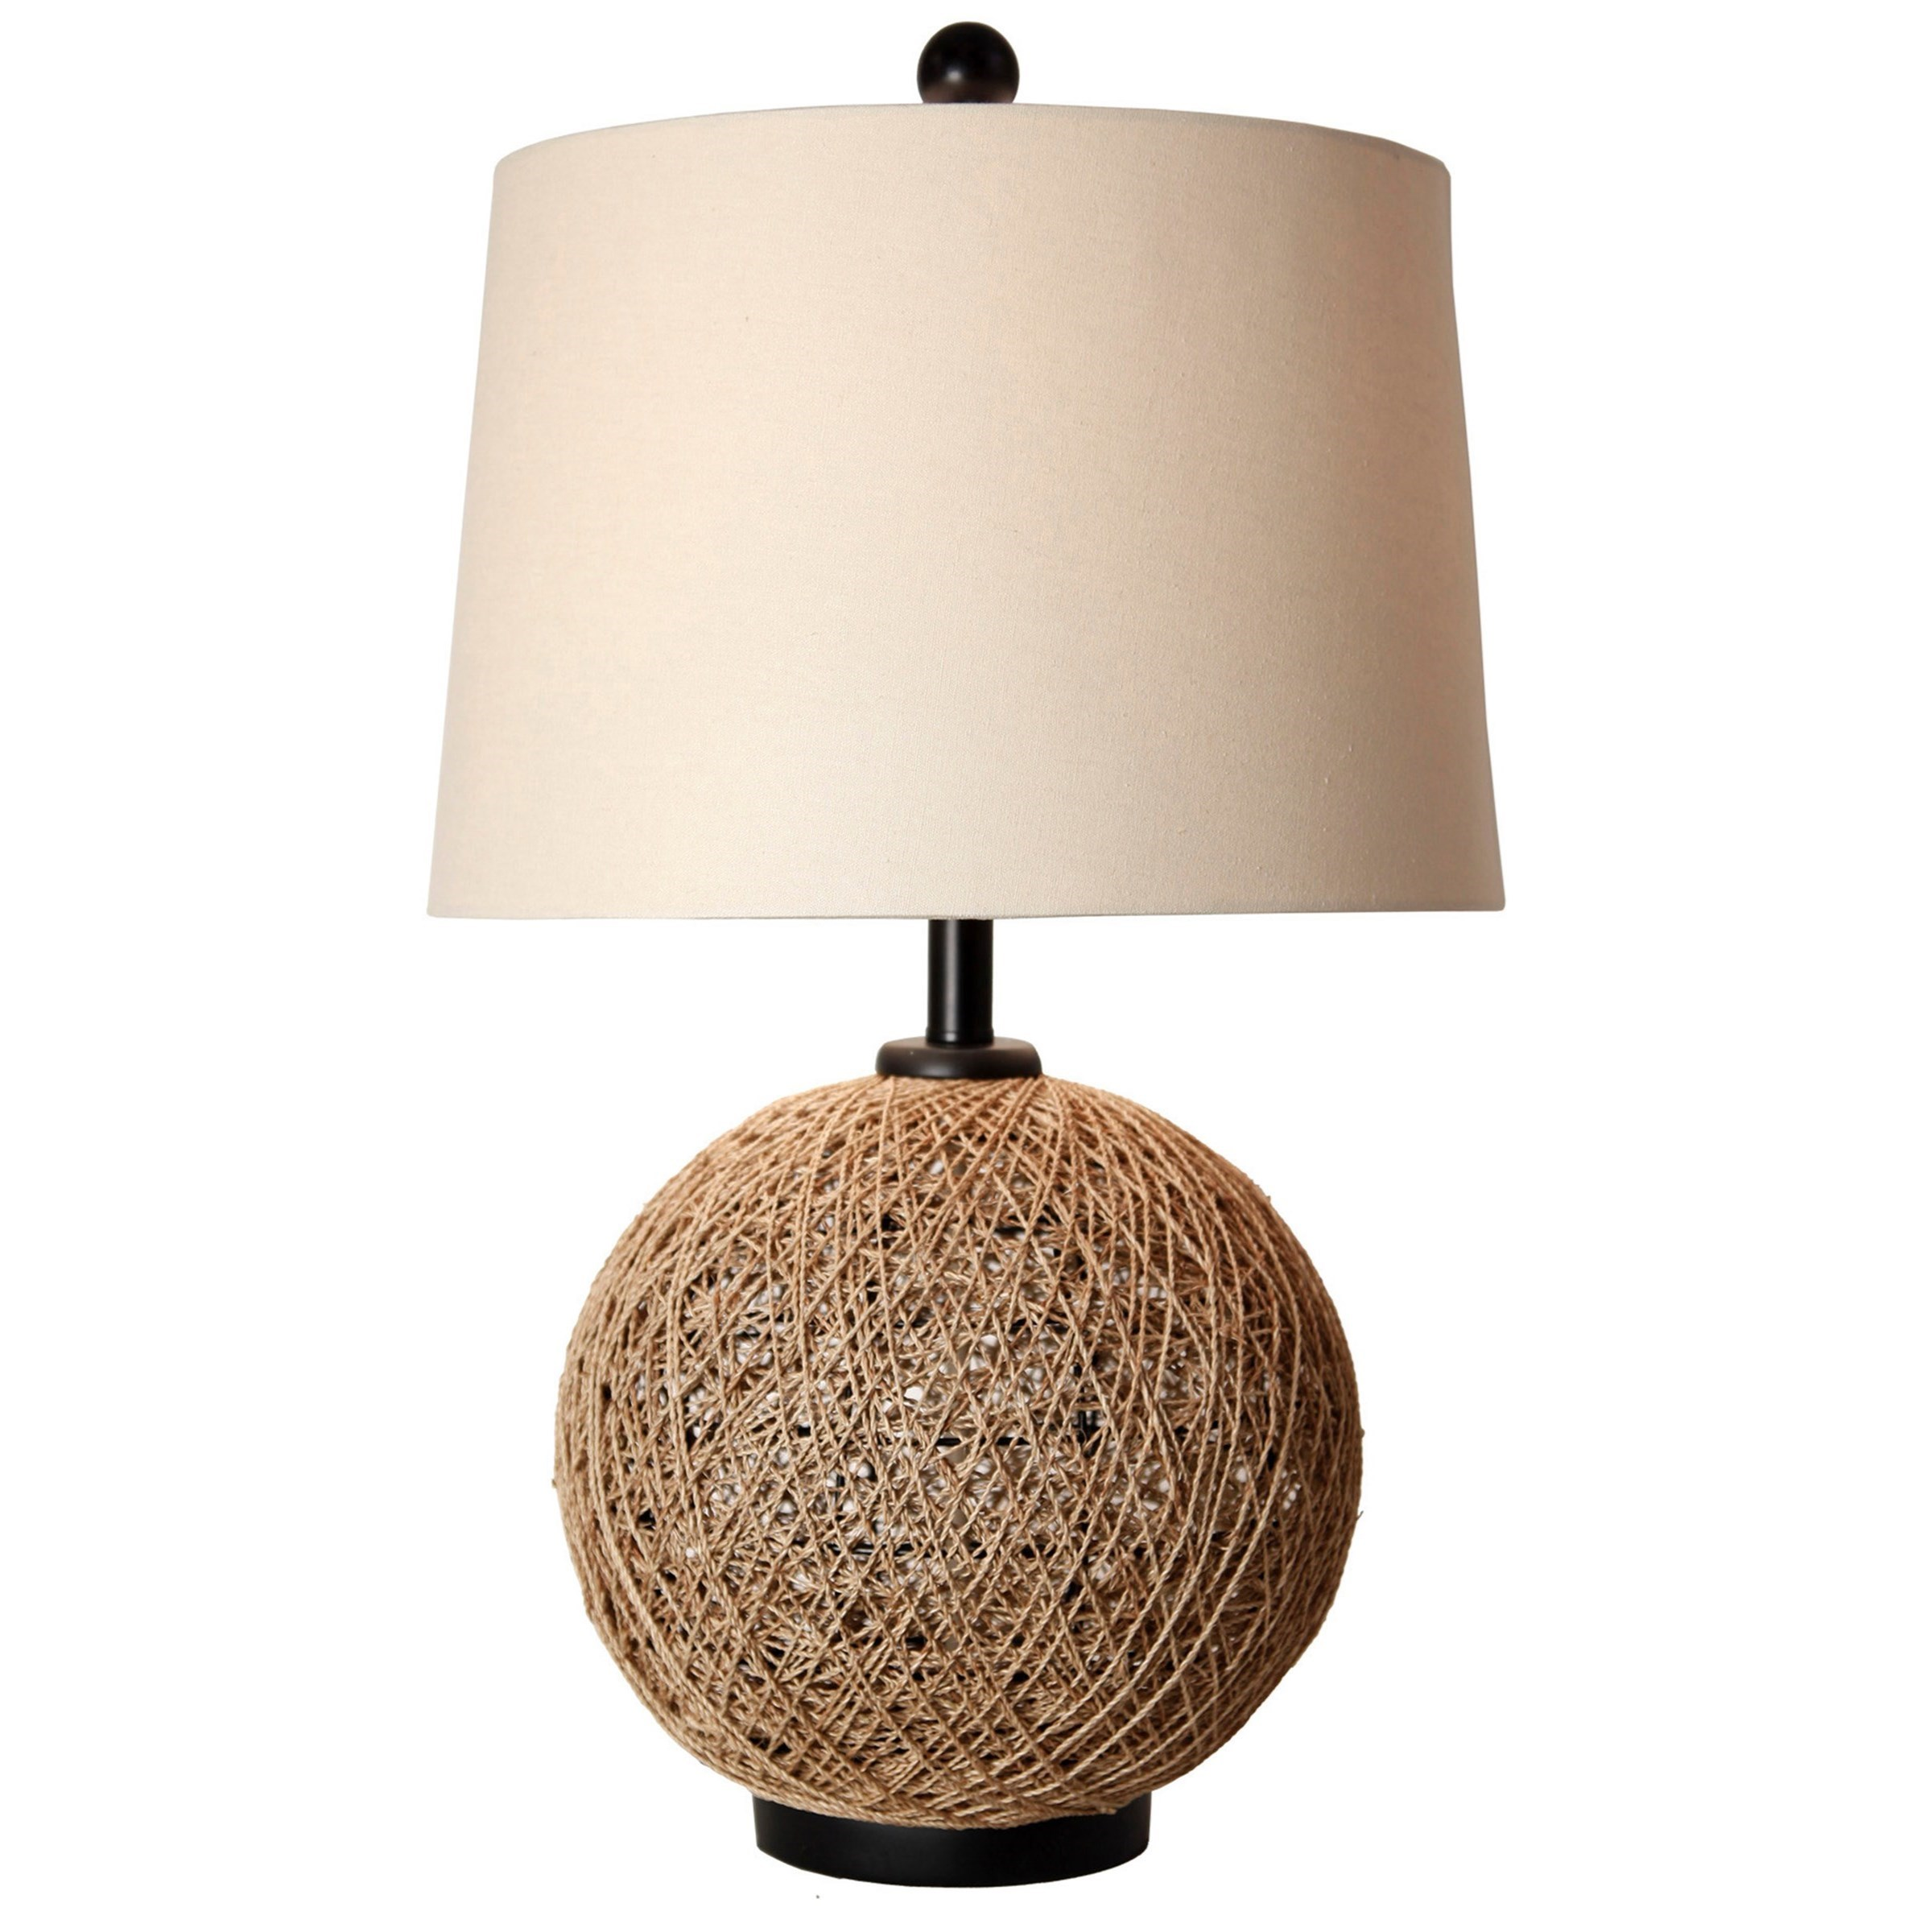 Lamps Woven Natural Rattan Ball Table Lamp by StyleCraft at Wilcox Furniture